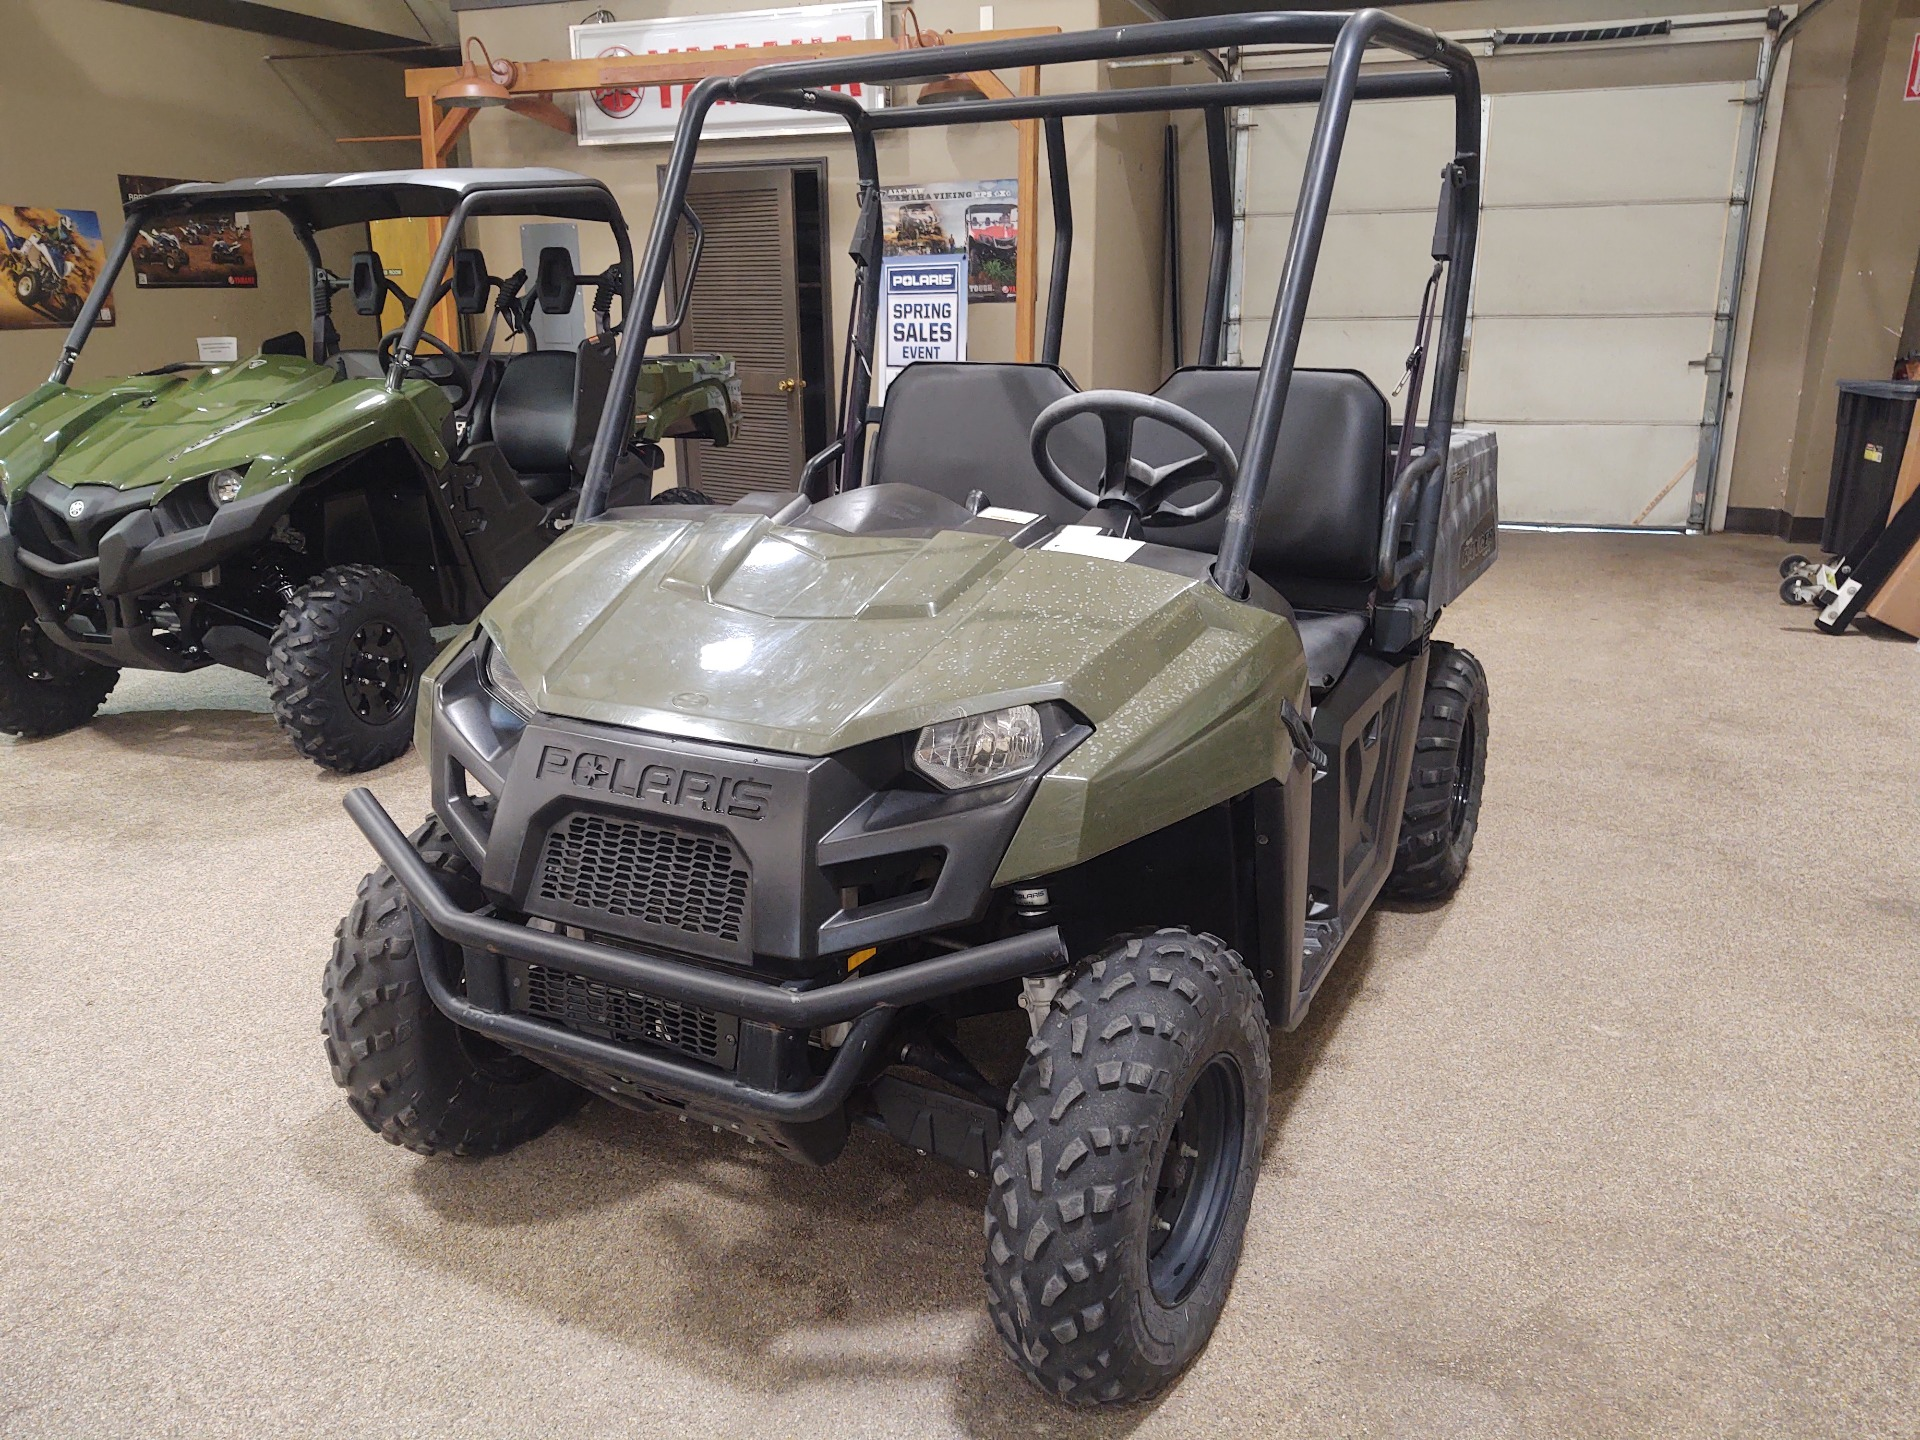 2014 Polaris Ranger® 570 EFI in North Platte, Nebraska - Photo 1